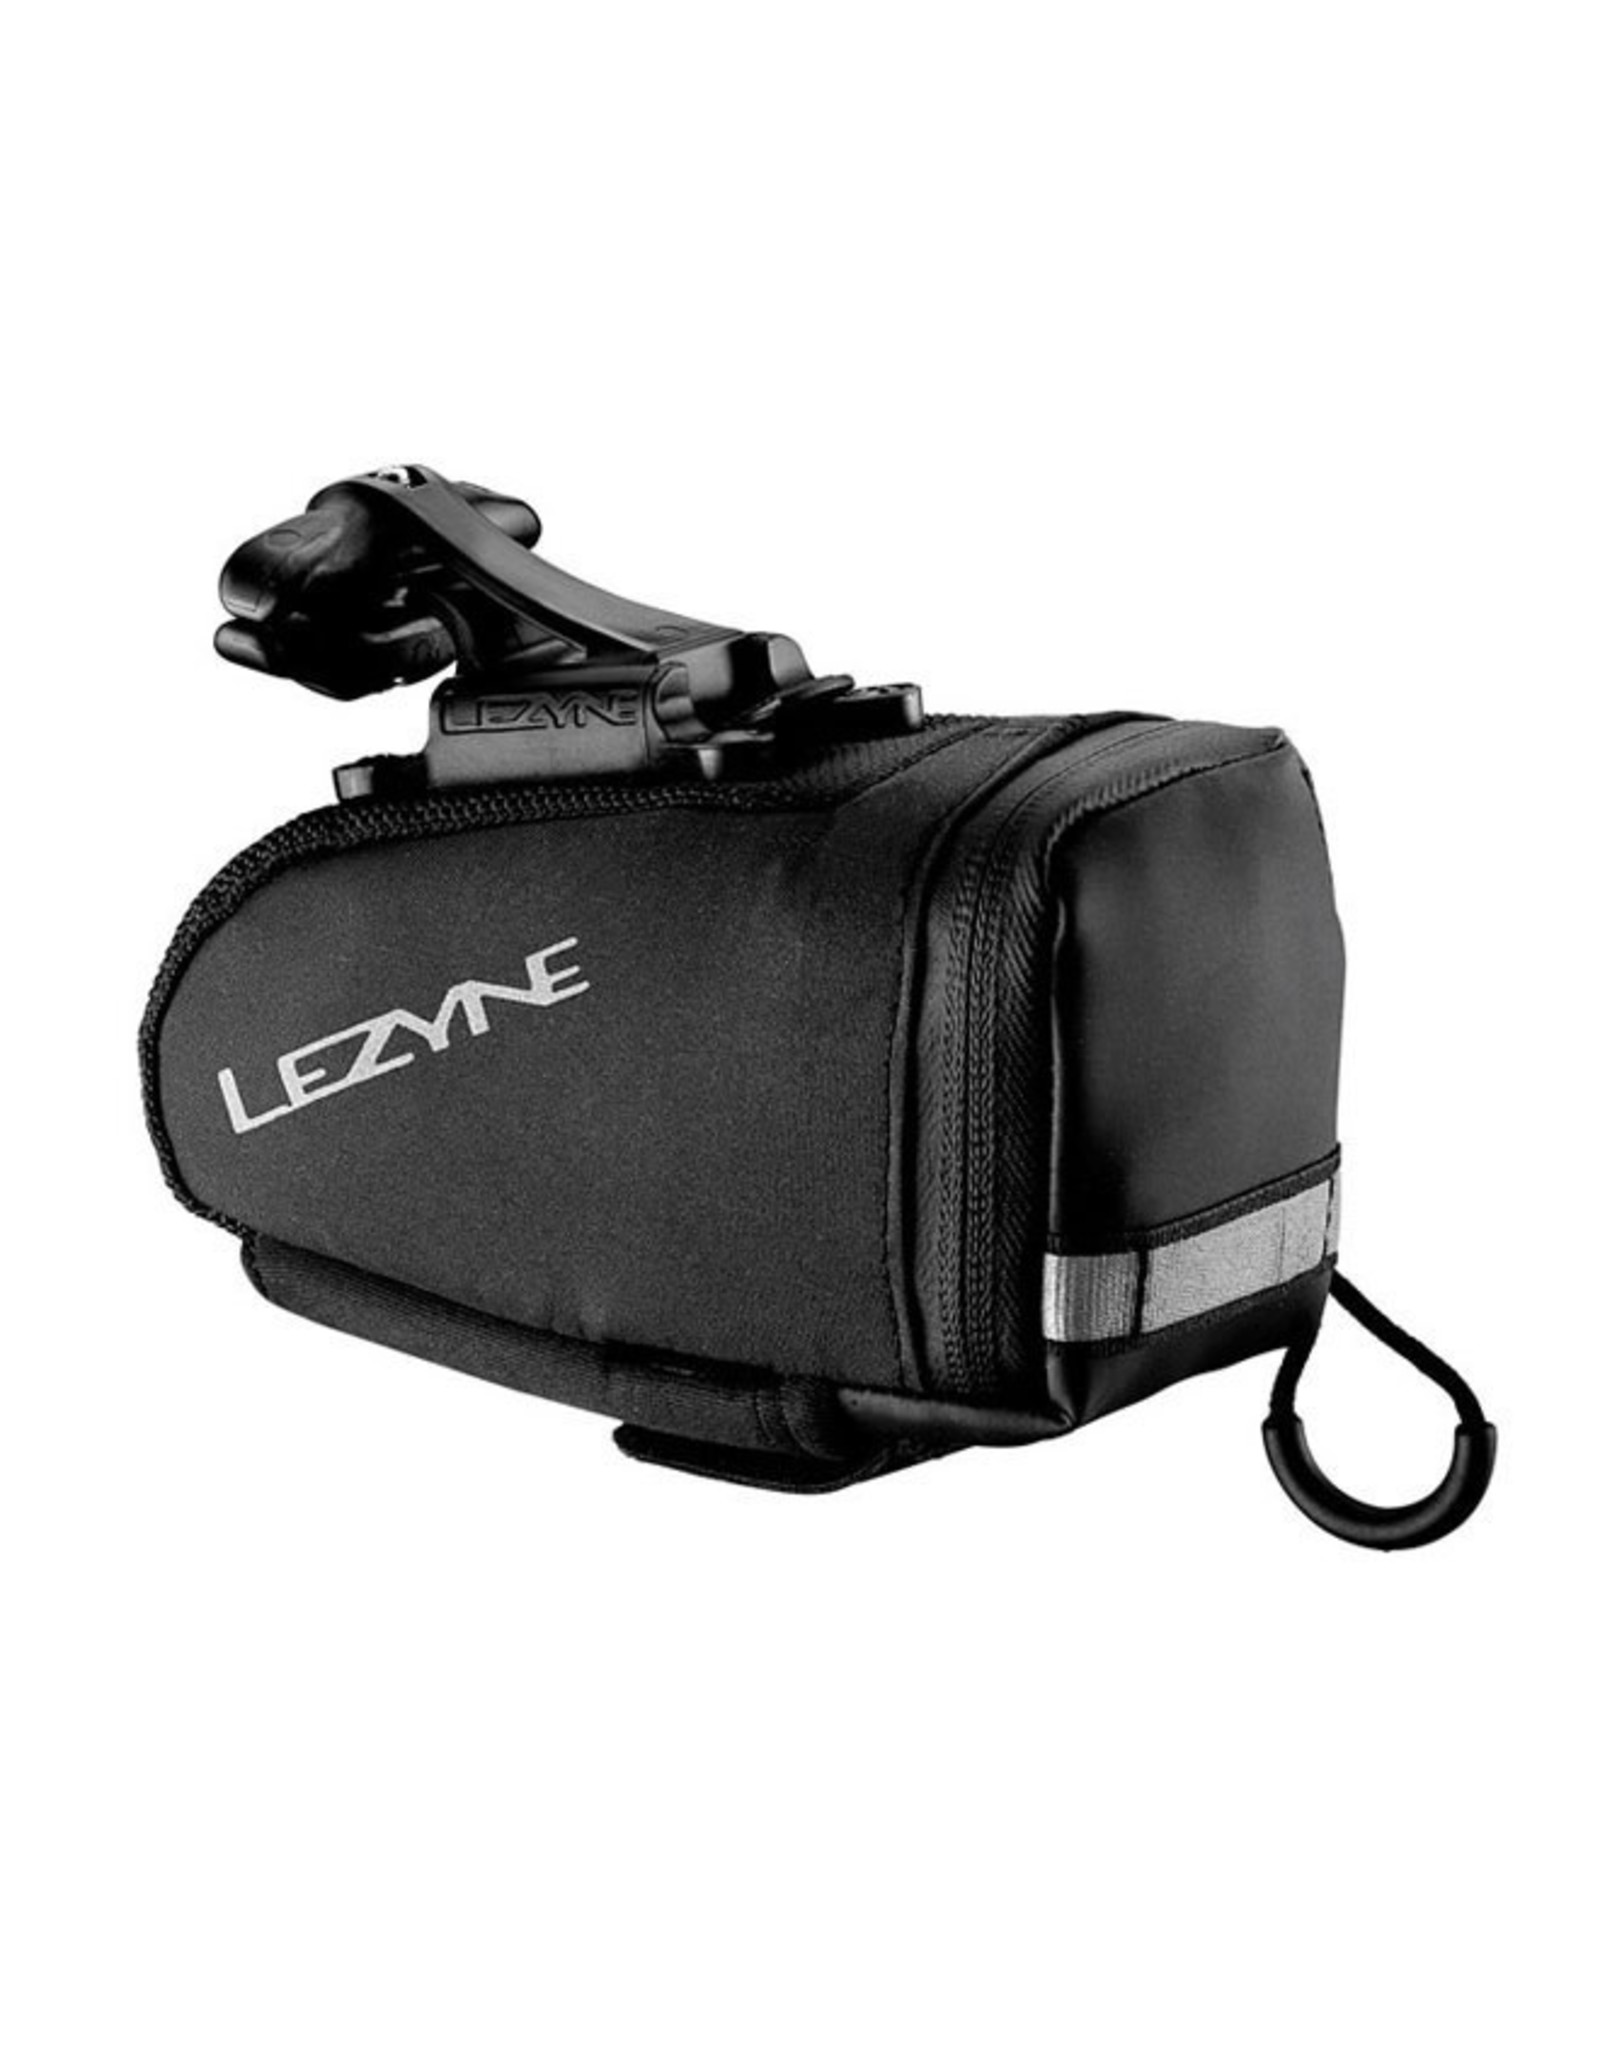 Lezyne Saddle Bag M Caddy QR